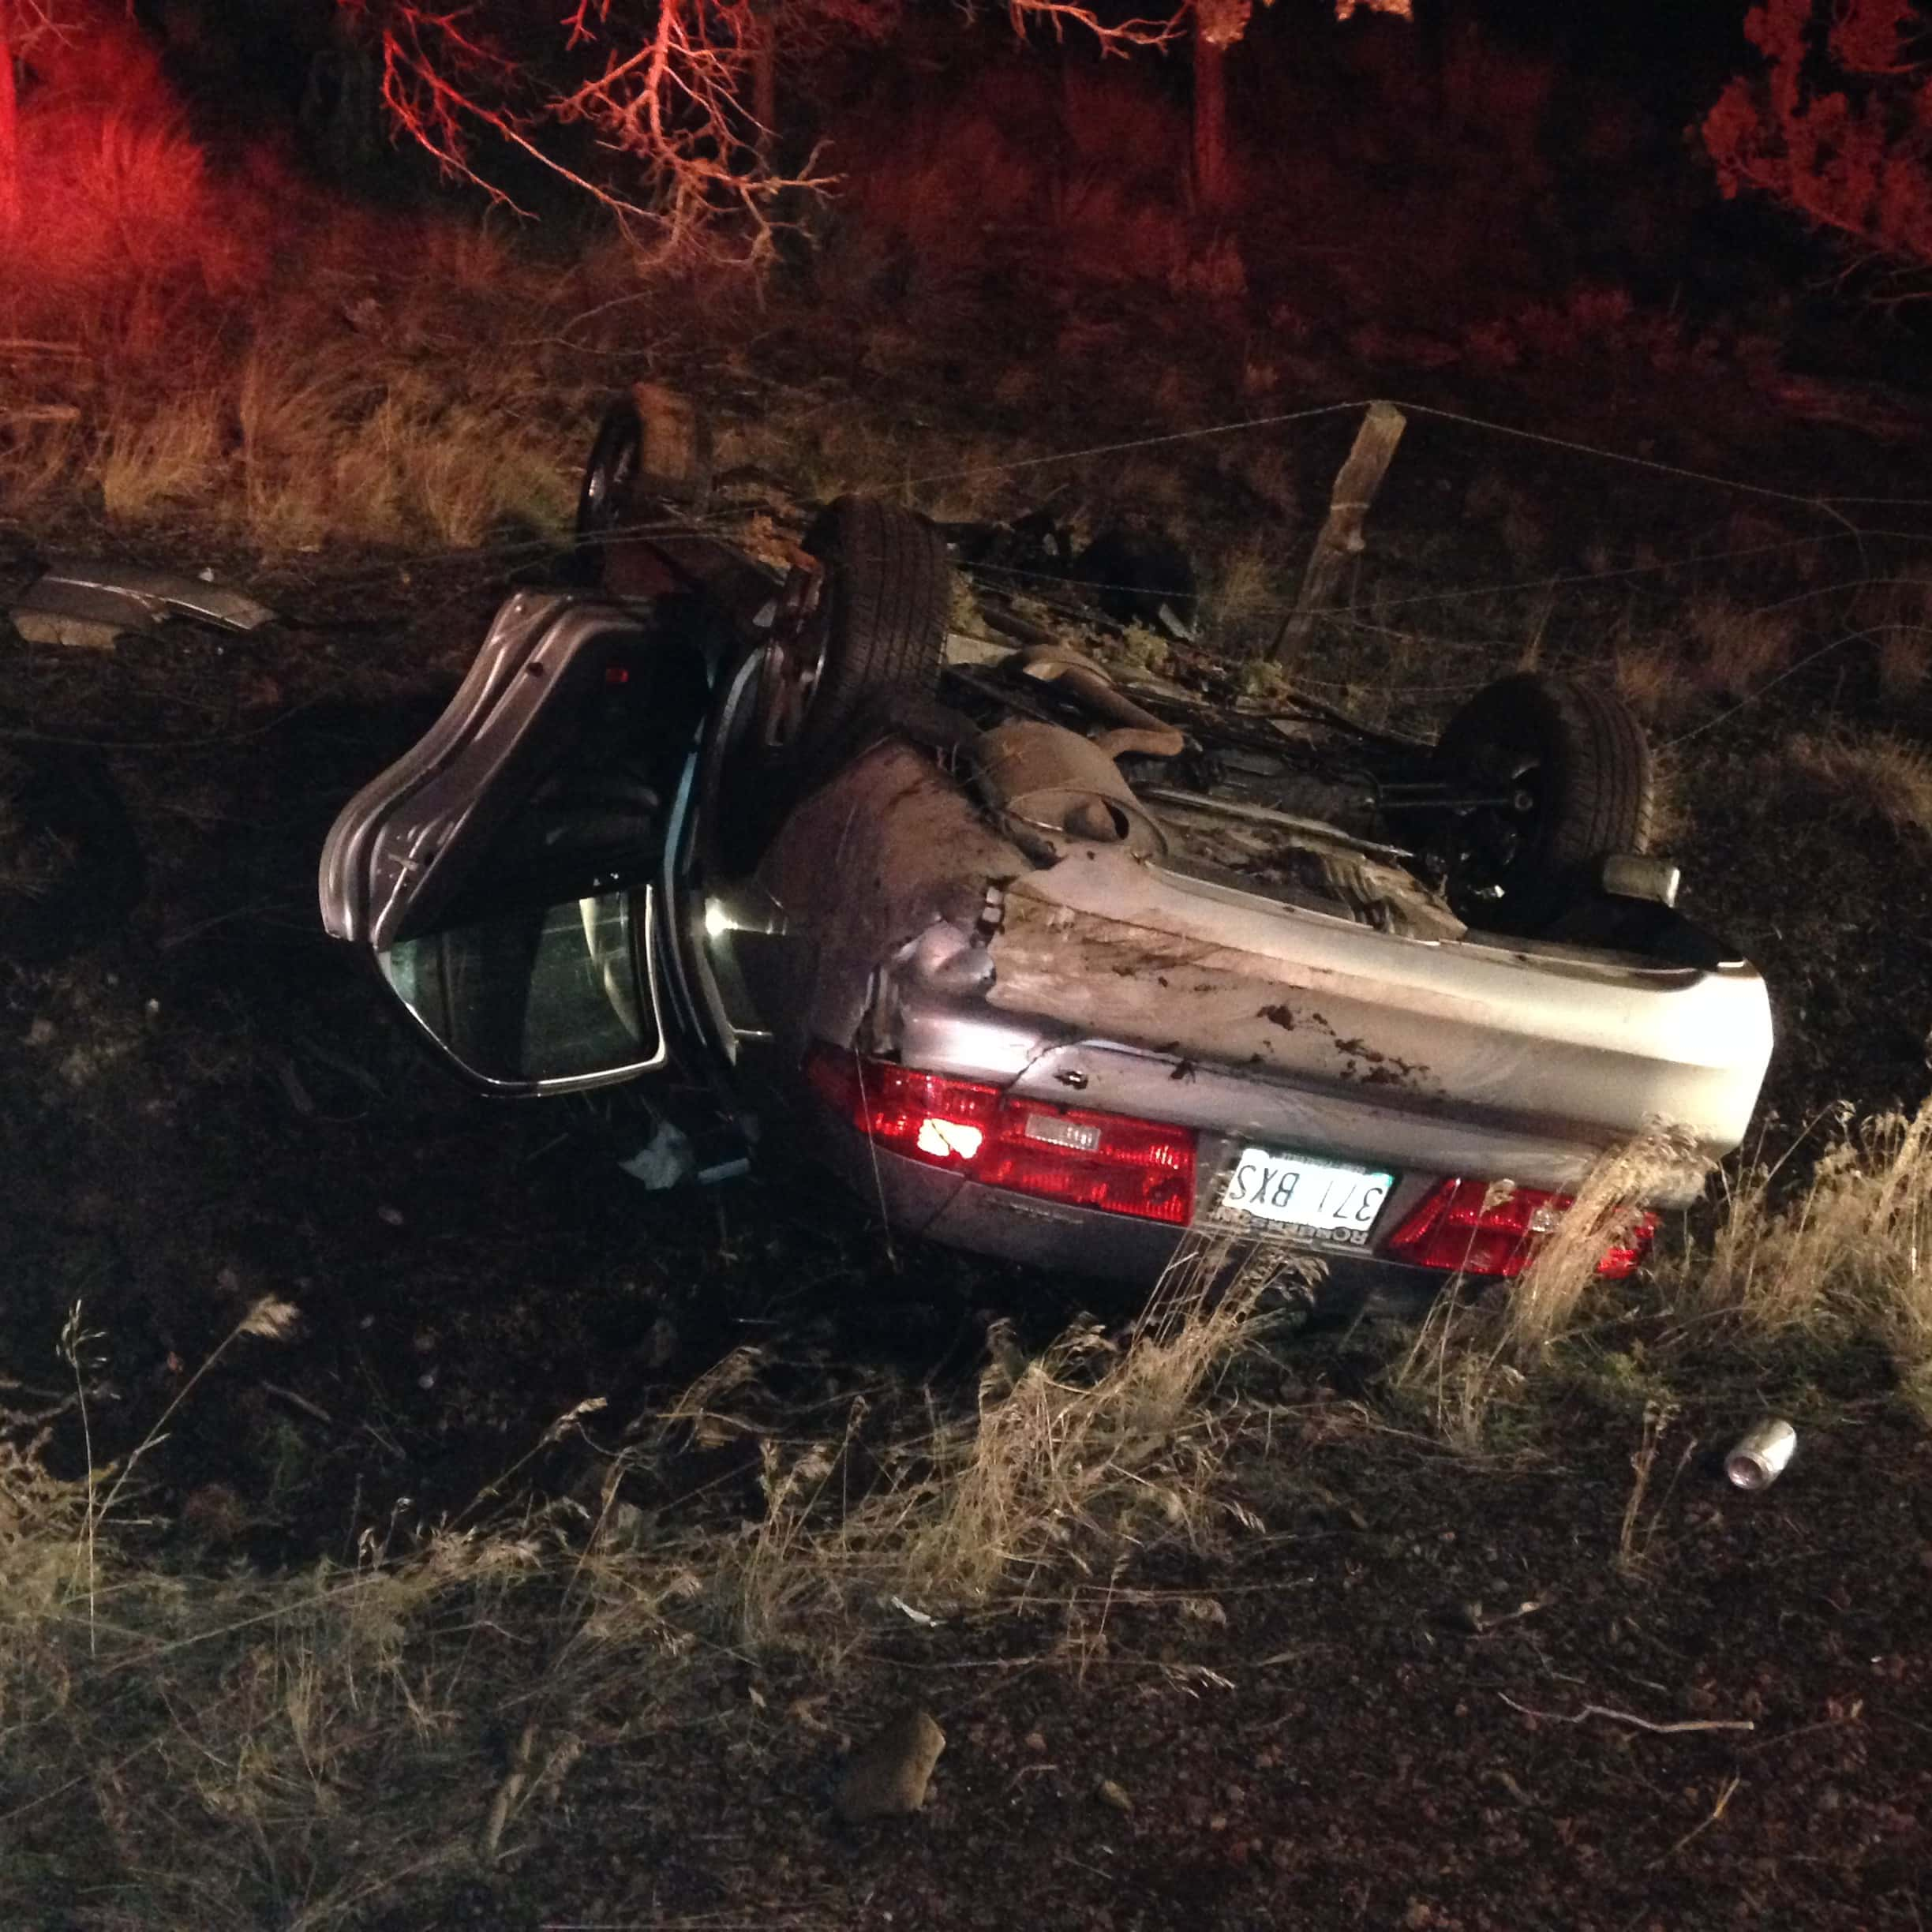 Injury Accident Lands A Vehicle Upside Down In Prineville